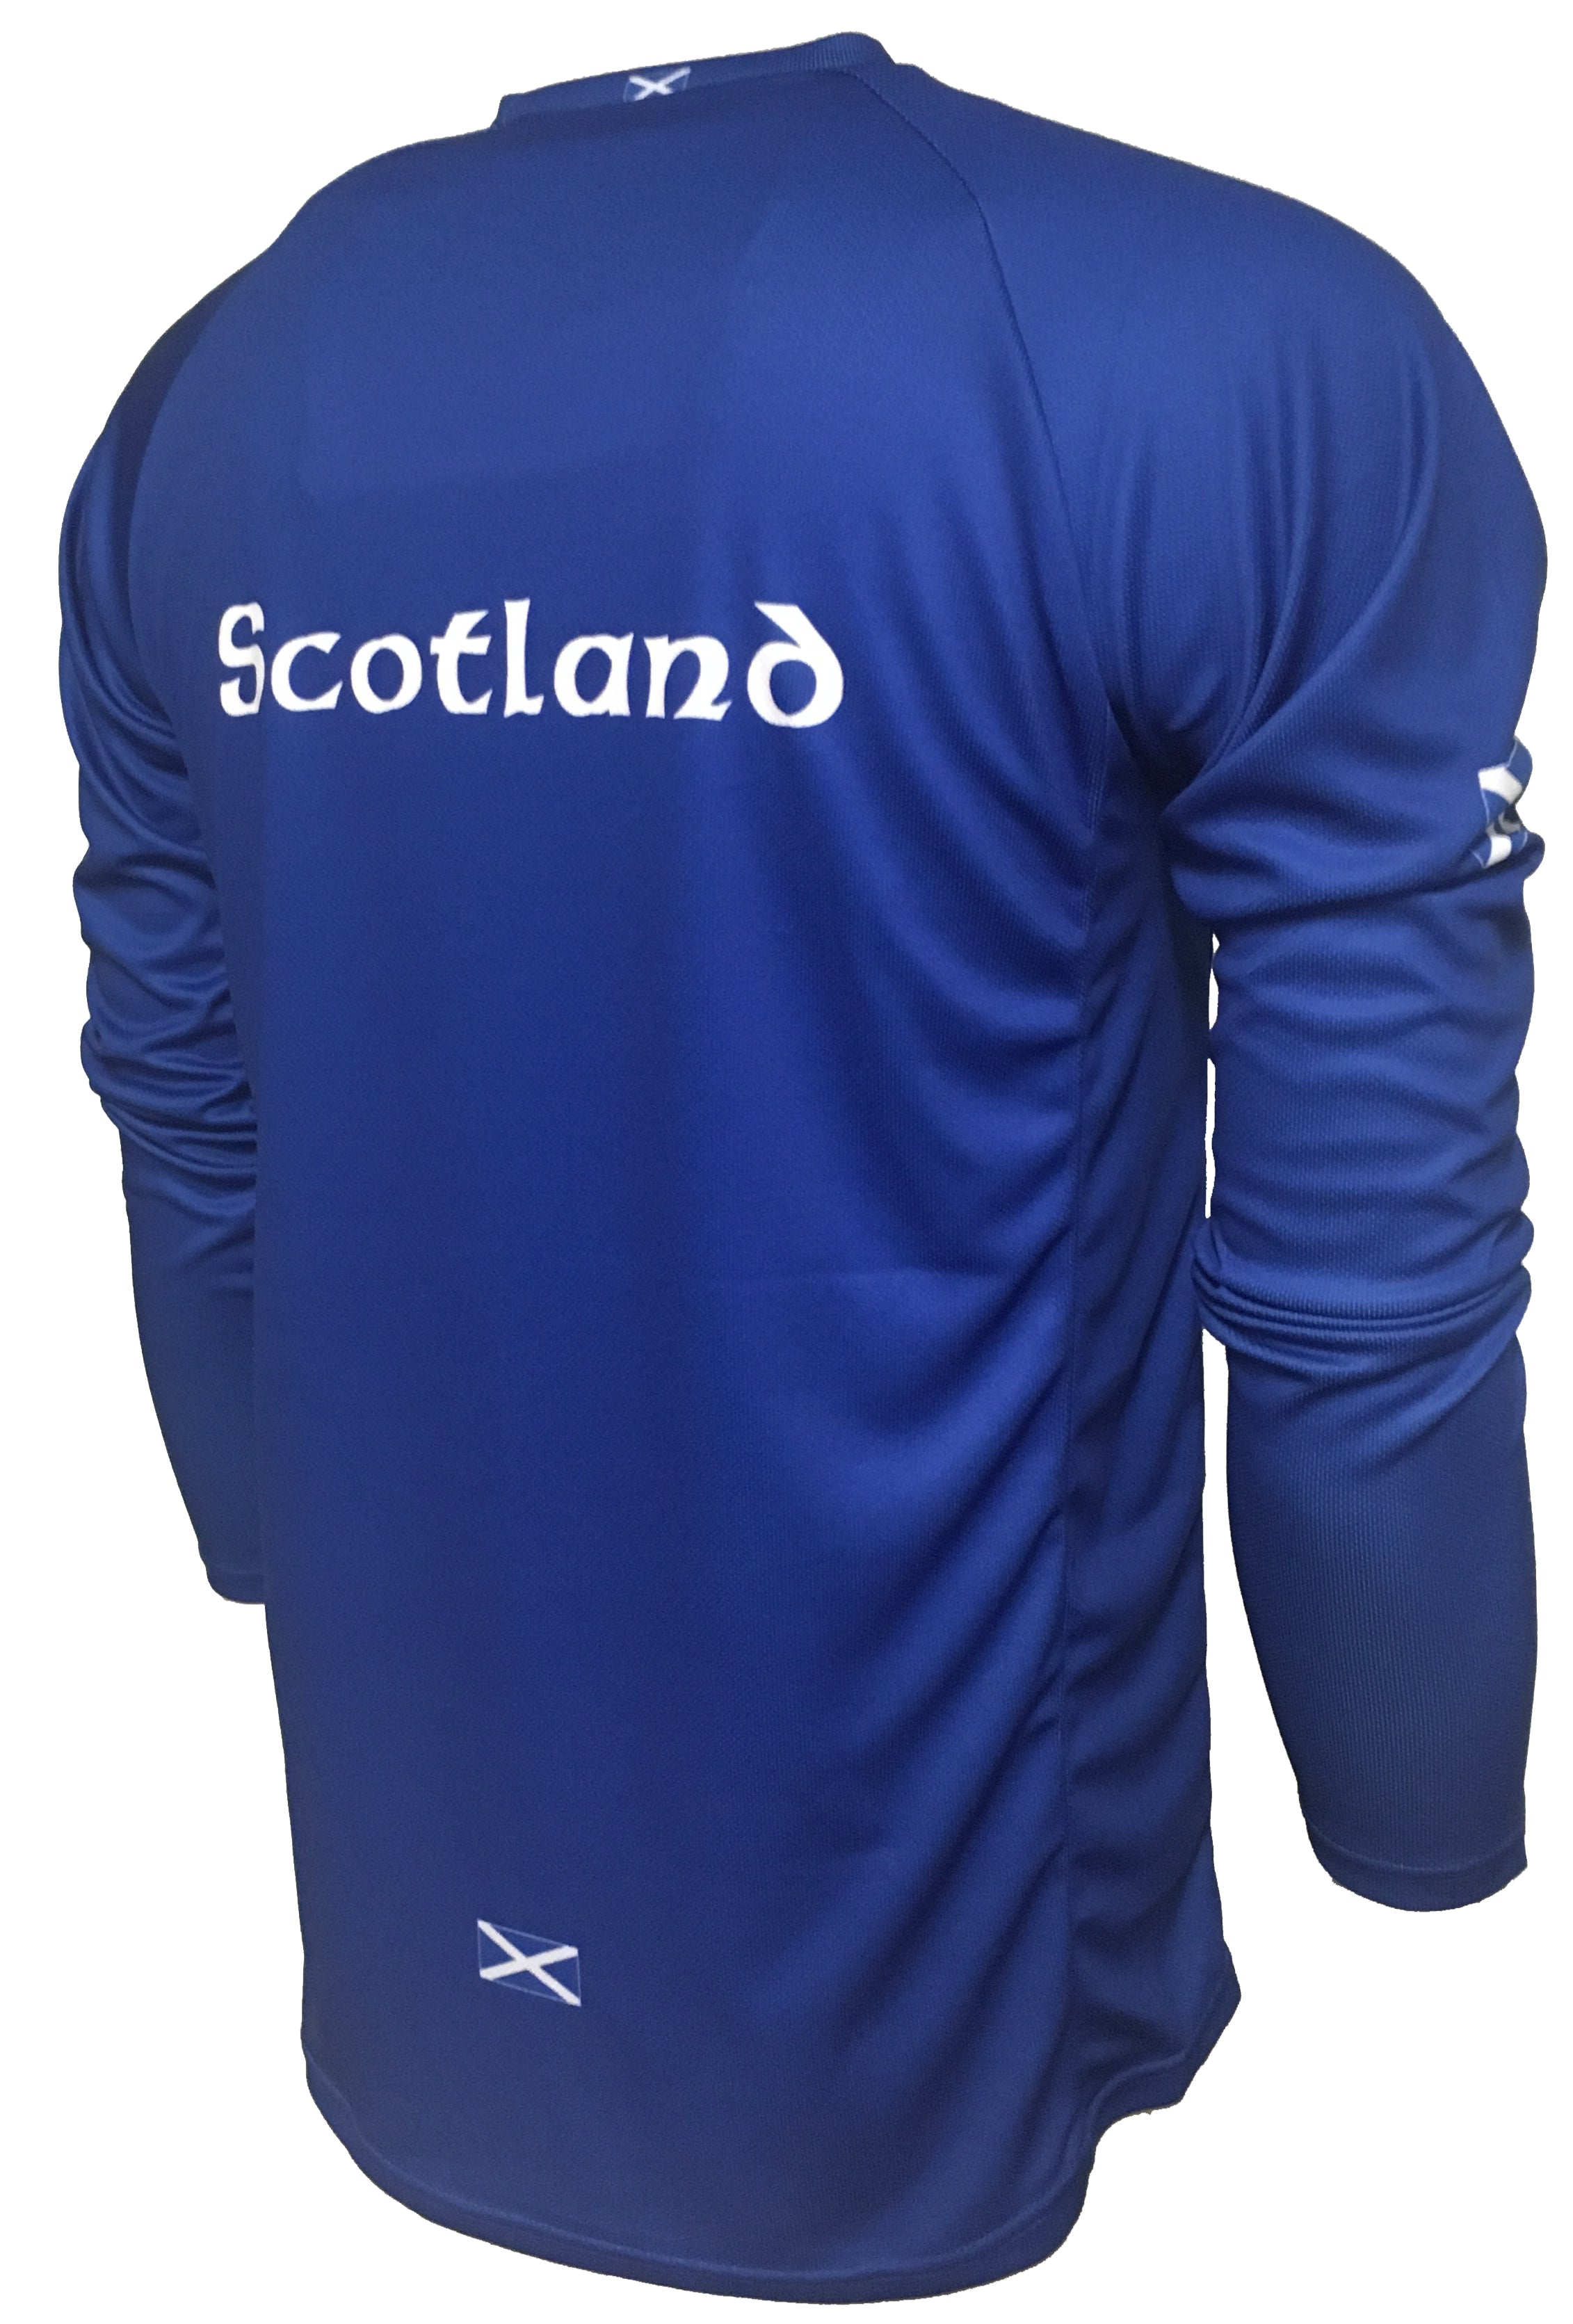 Scotland Original Enduro Cycle Jersey Back